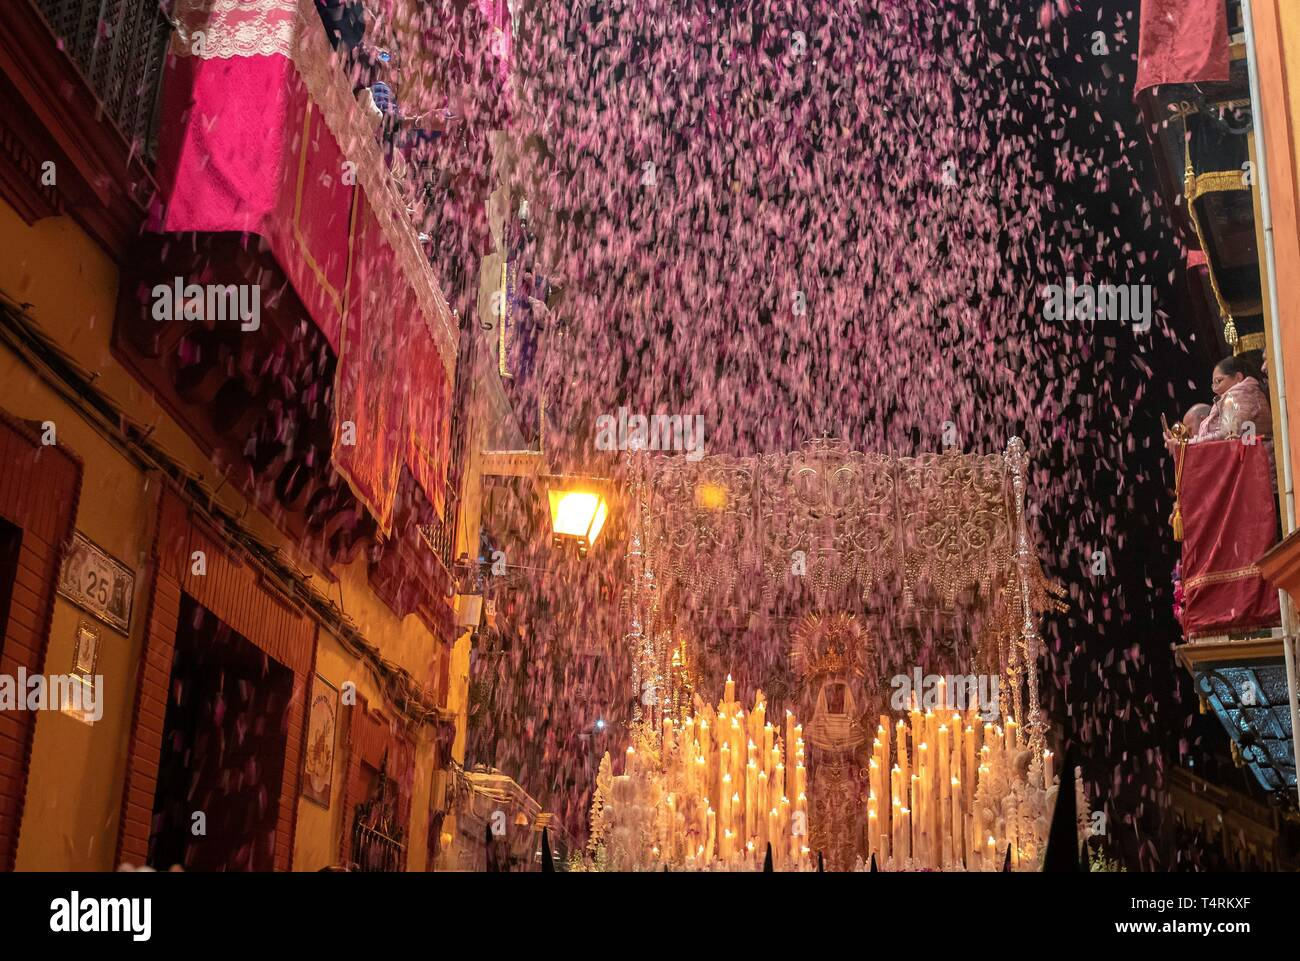 ***MANDATORY KILL*** PLEASE REMOVE THIS PICTURE FOM YOUR SERVICE AND ARCHIVES*** Petals are thrown from the balconies as the Virgin of Esperanza de Triana leaves its temple at the neighborhood of Triana during the 'Madruga' (lit: Small Hours) processions in Seville, Spain, 19 April 2019. EFE/ Julio Munoz - Stock Image